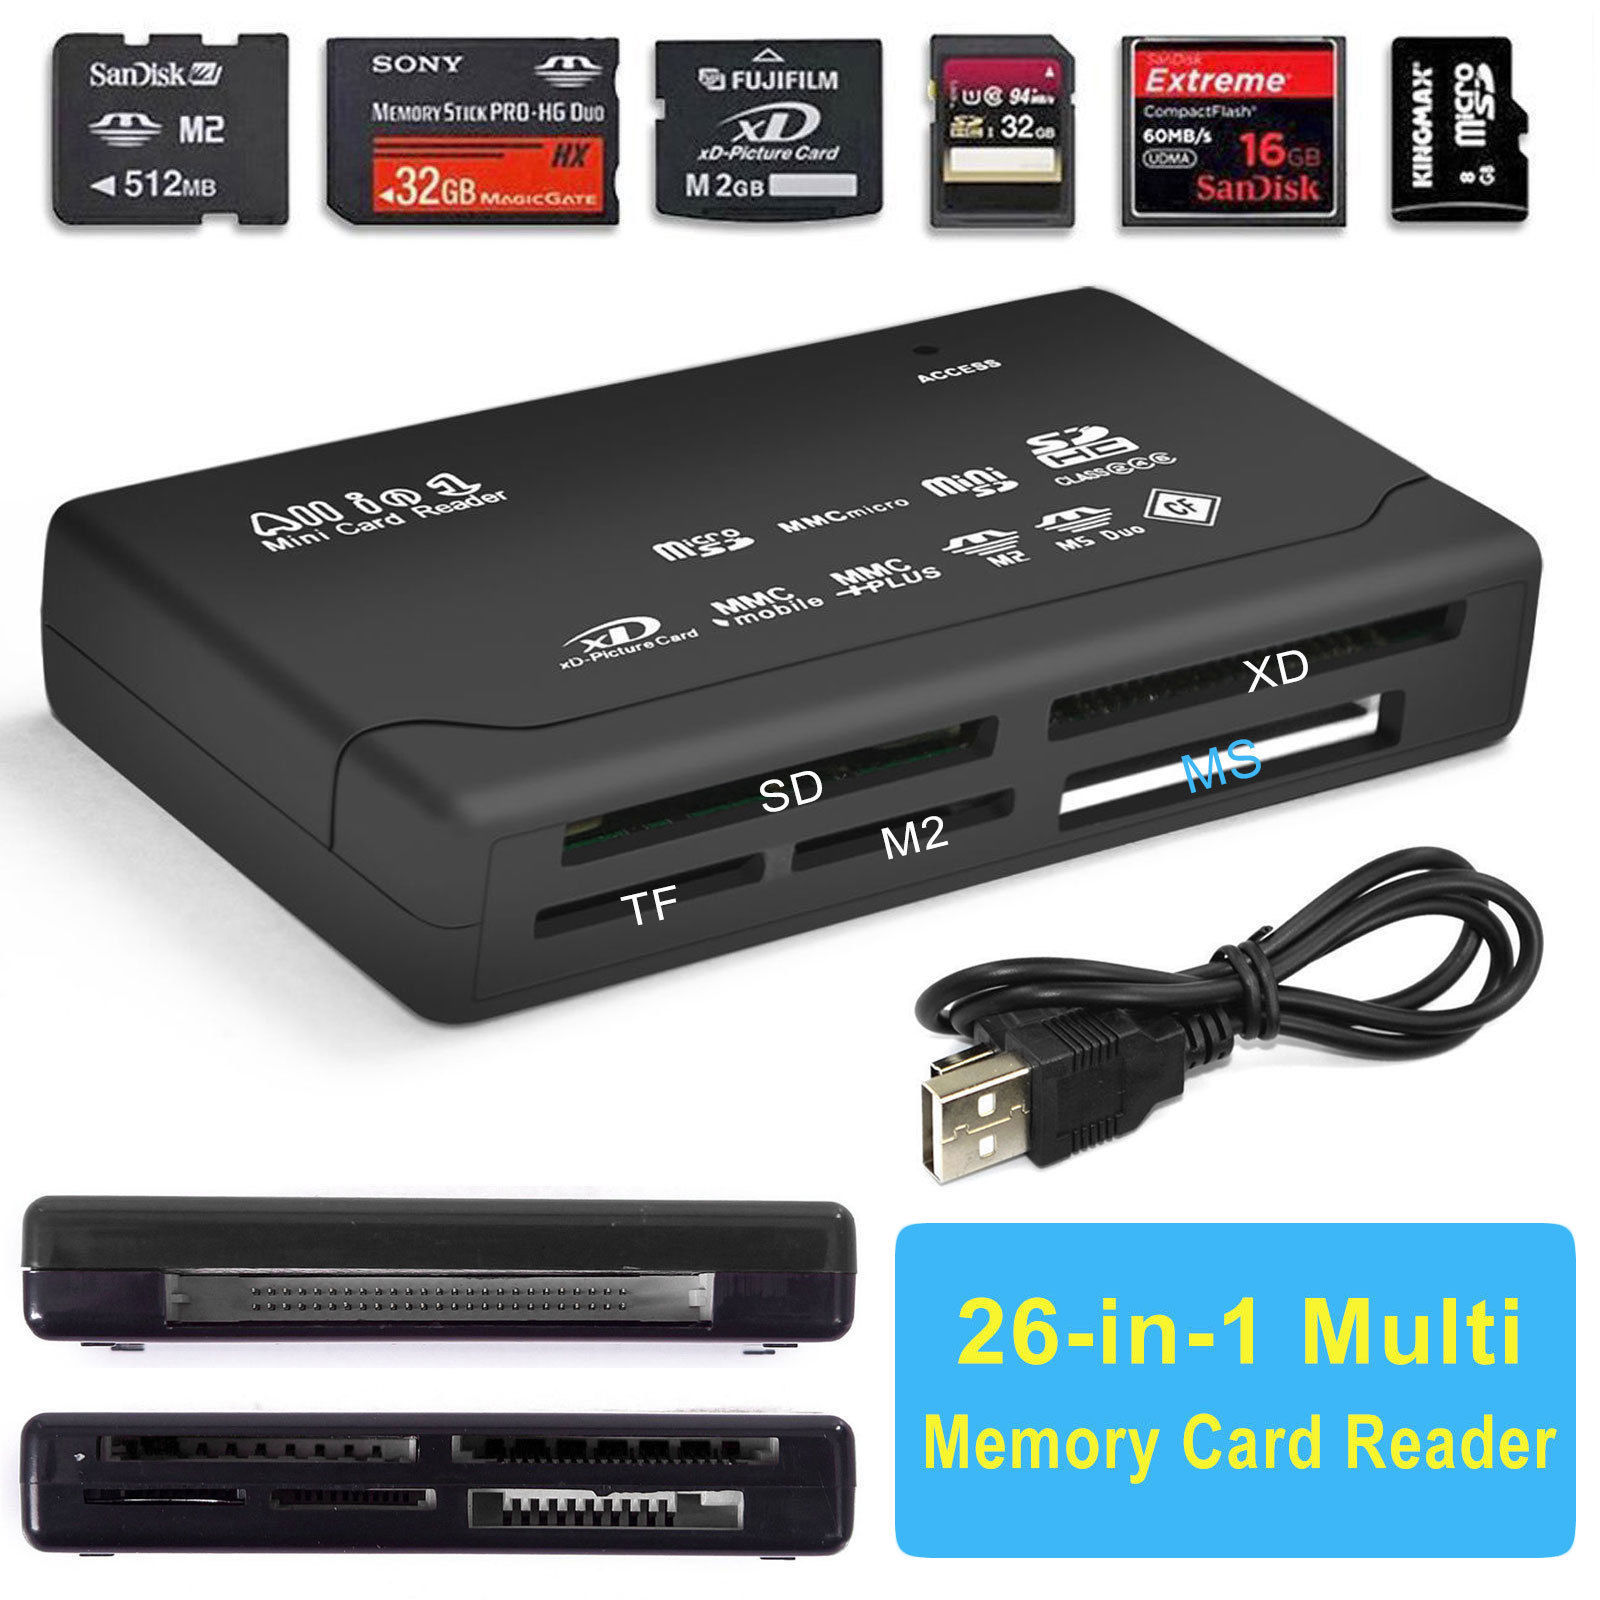 TSV Black Mini 26-in-1 USB 2.0 Universal High Speed Memory Card Reader SD MS XD SDHC